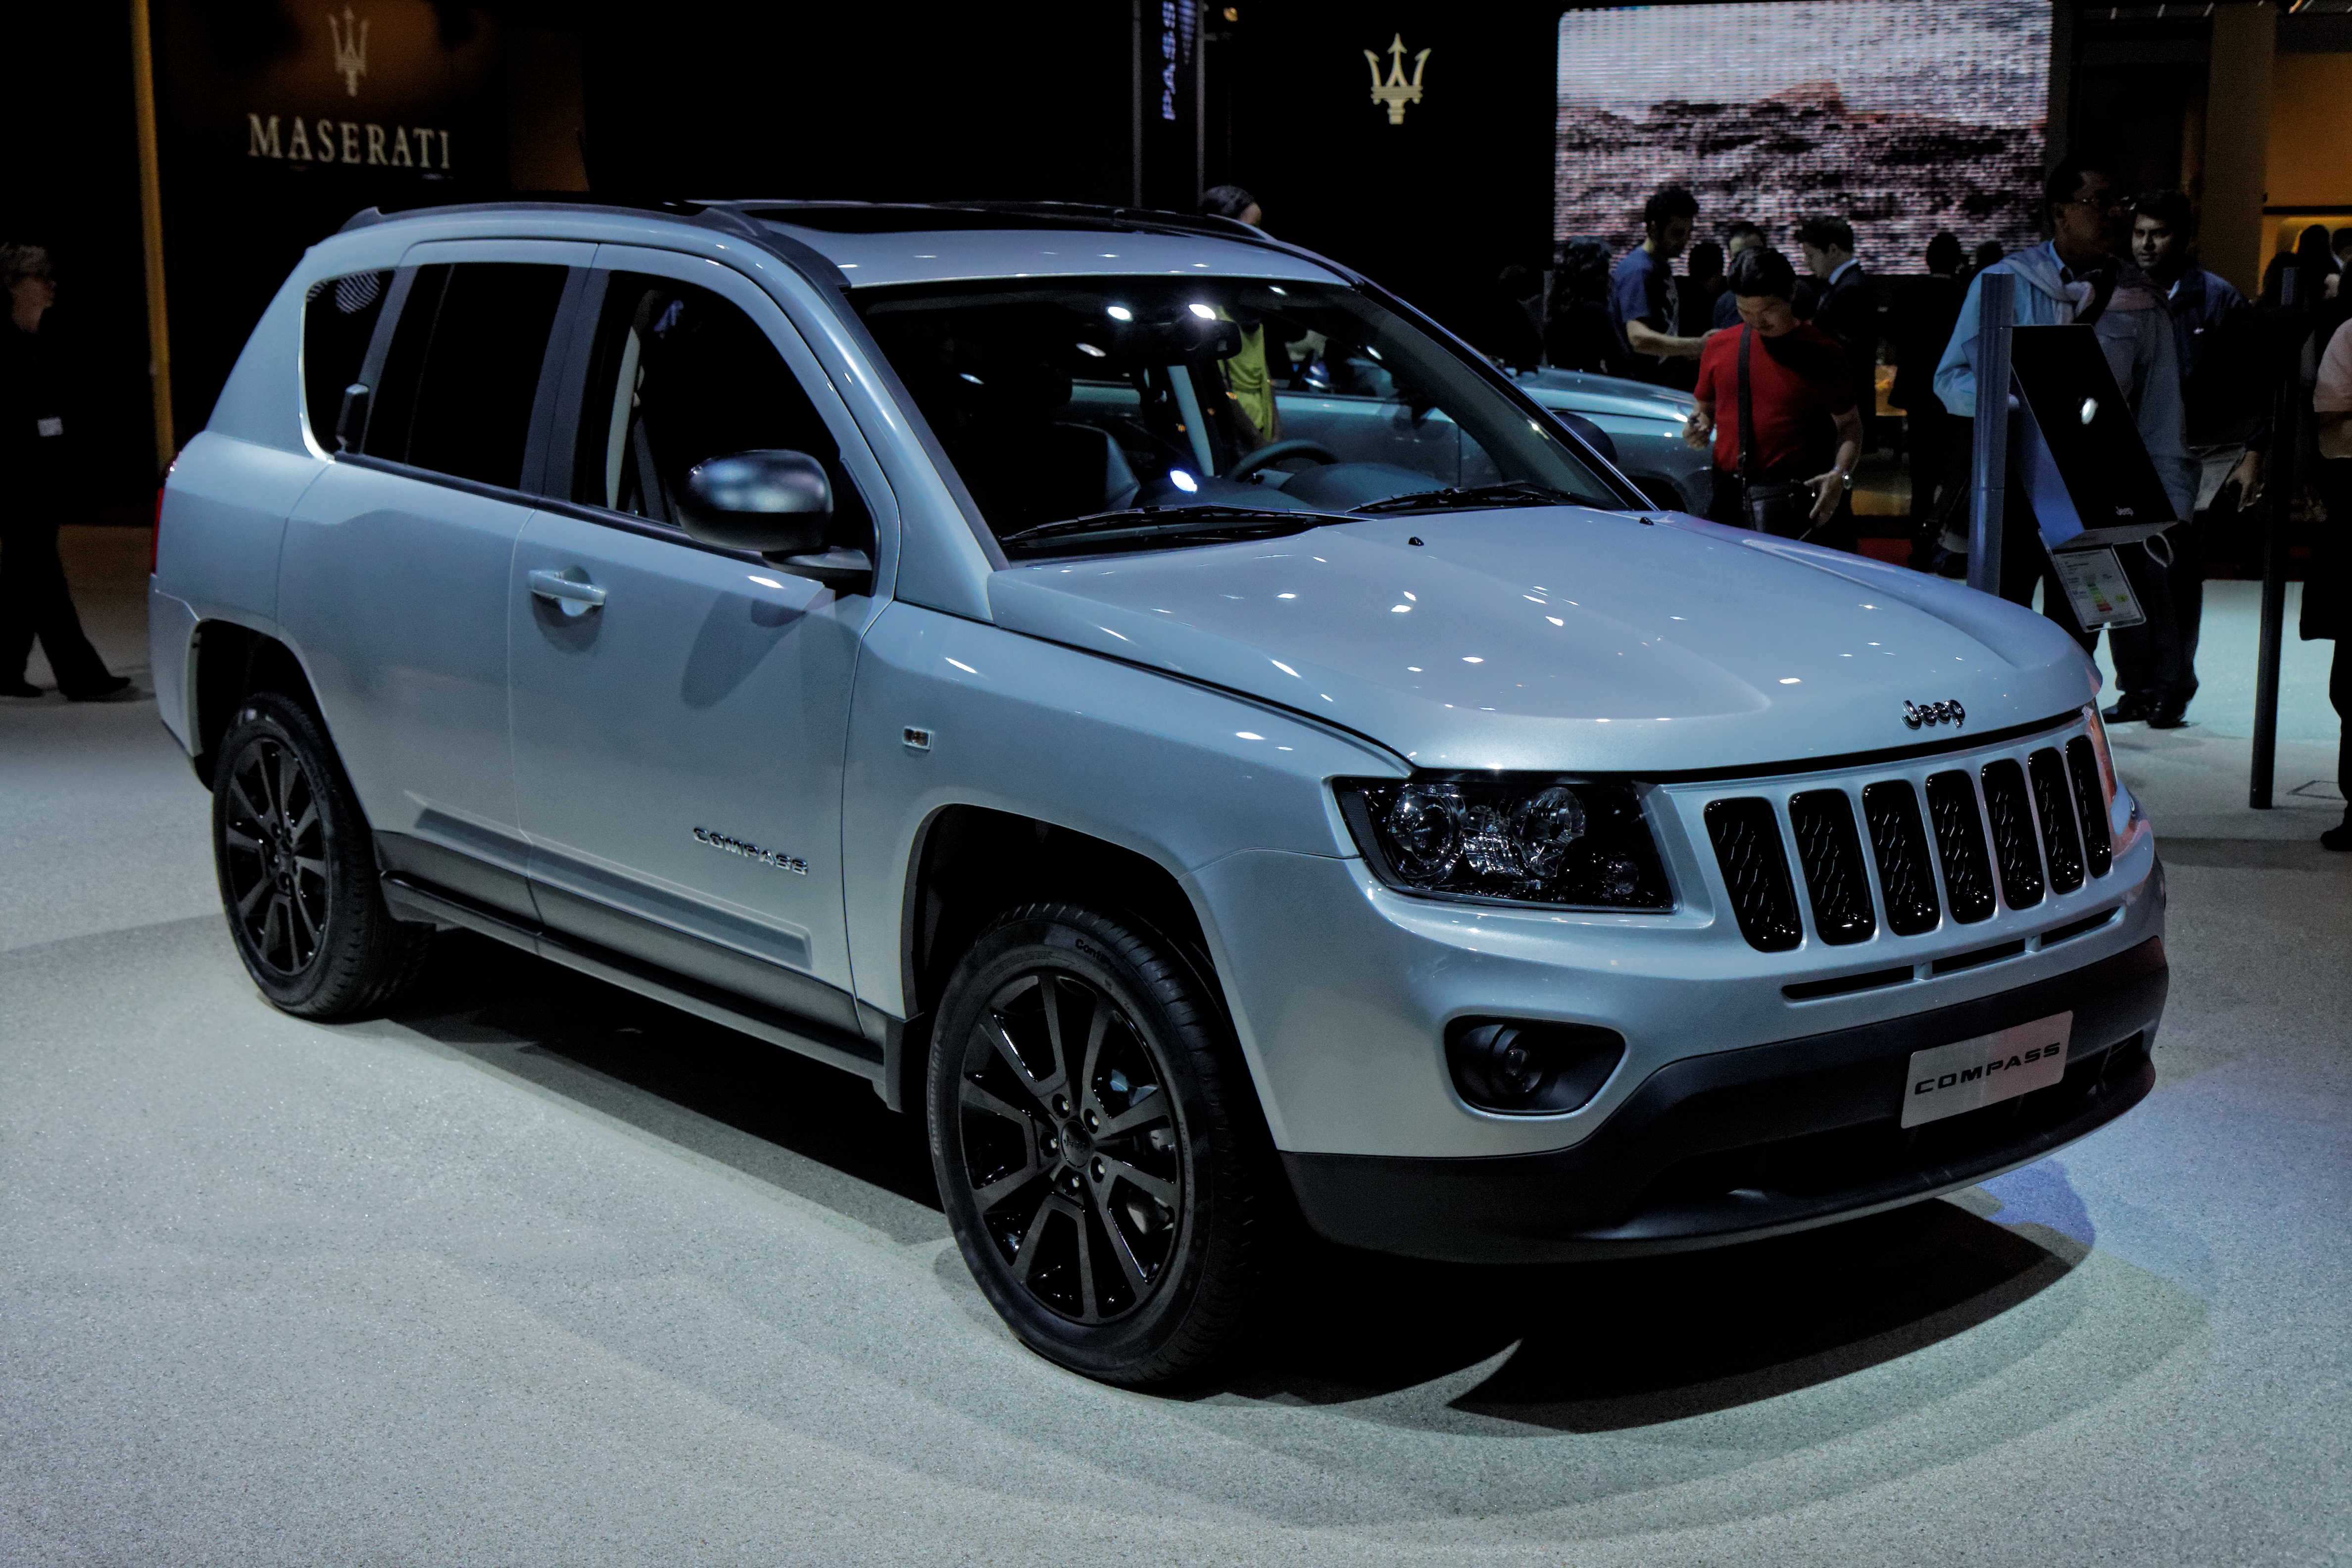 file jeep compass mondial de l 39 automobile de paris 2012 wikimedia commons. Black Bedroom Furniture Sets. Home Design Ideas